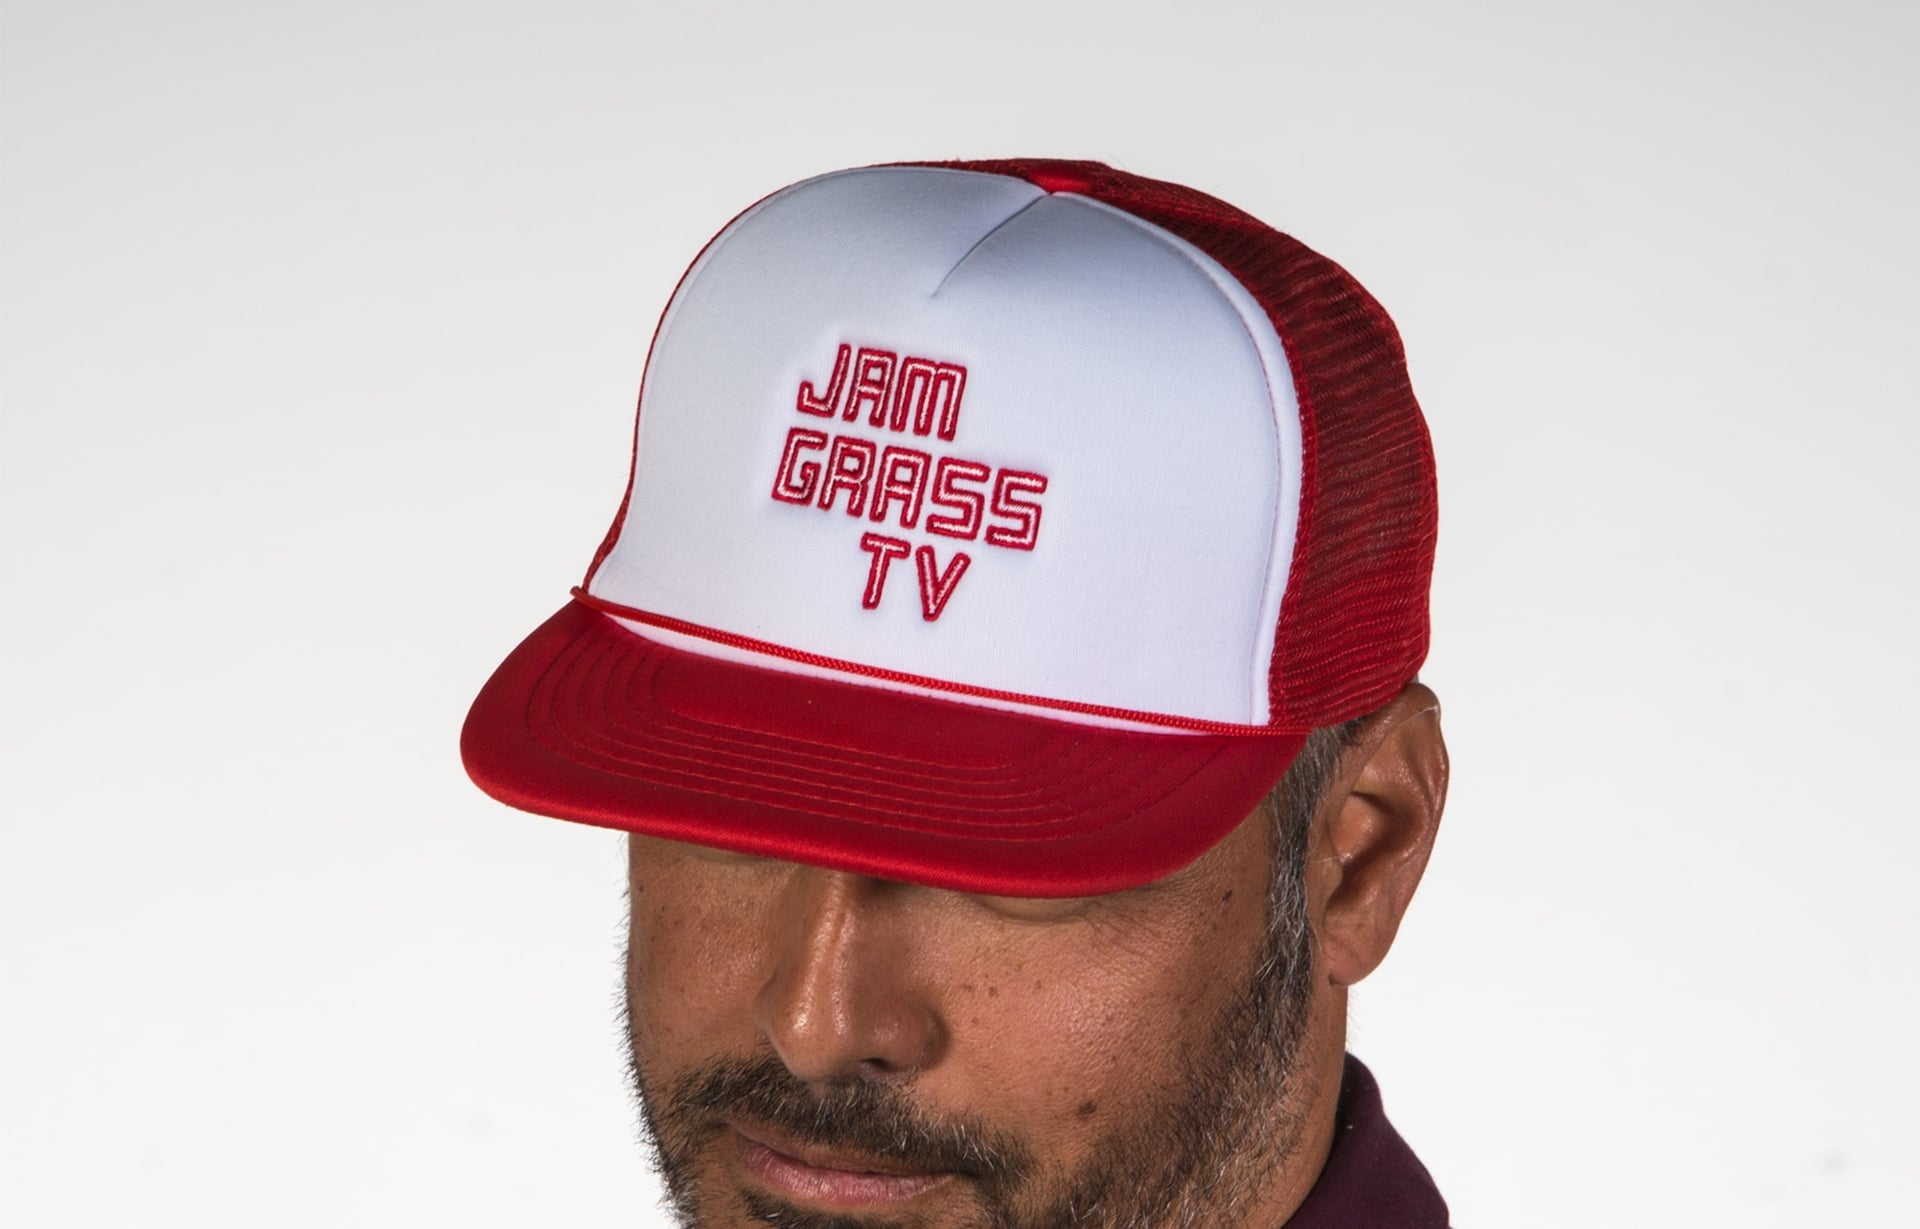 JamGrass TV Trucker Hat